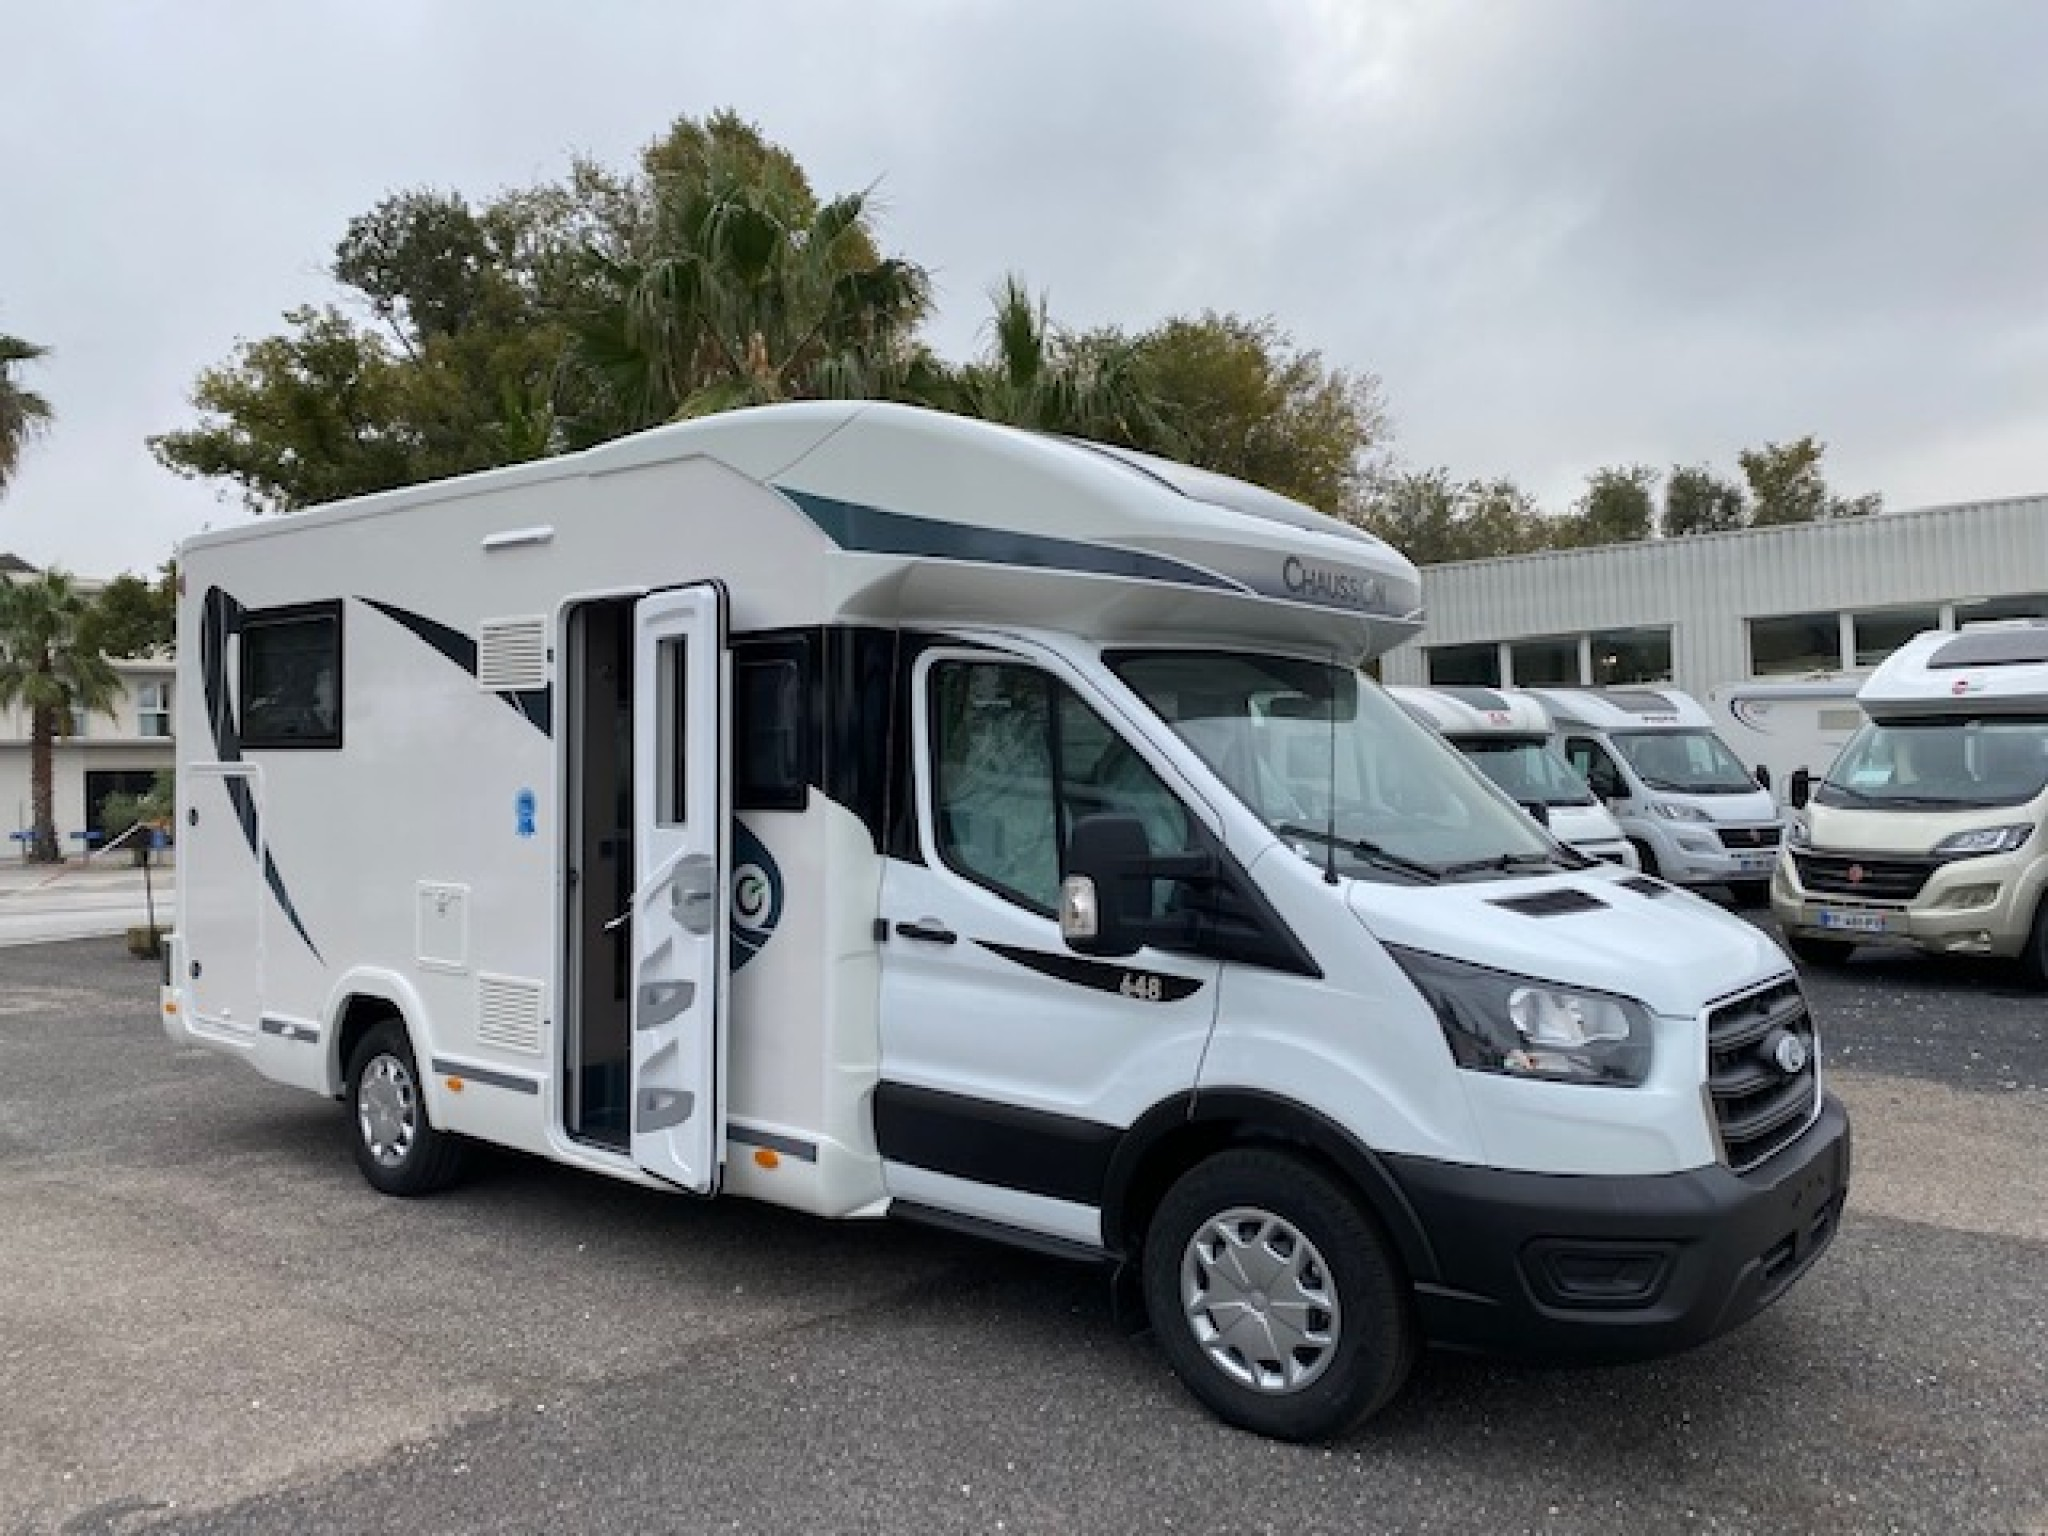 Camping-car CHAUSSON FIRST LINE 648